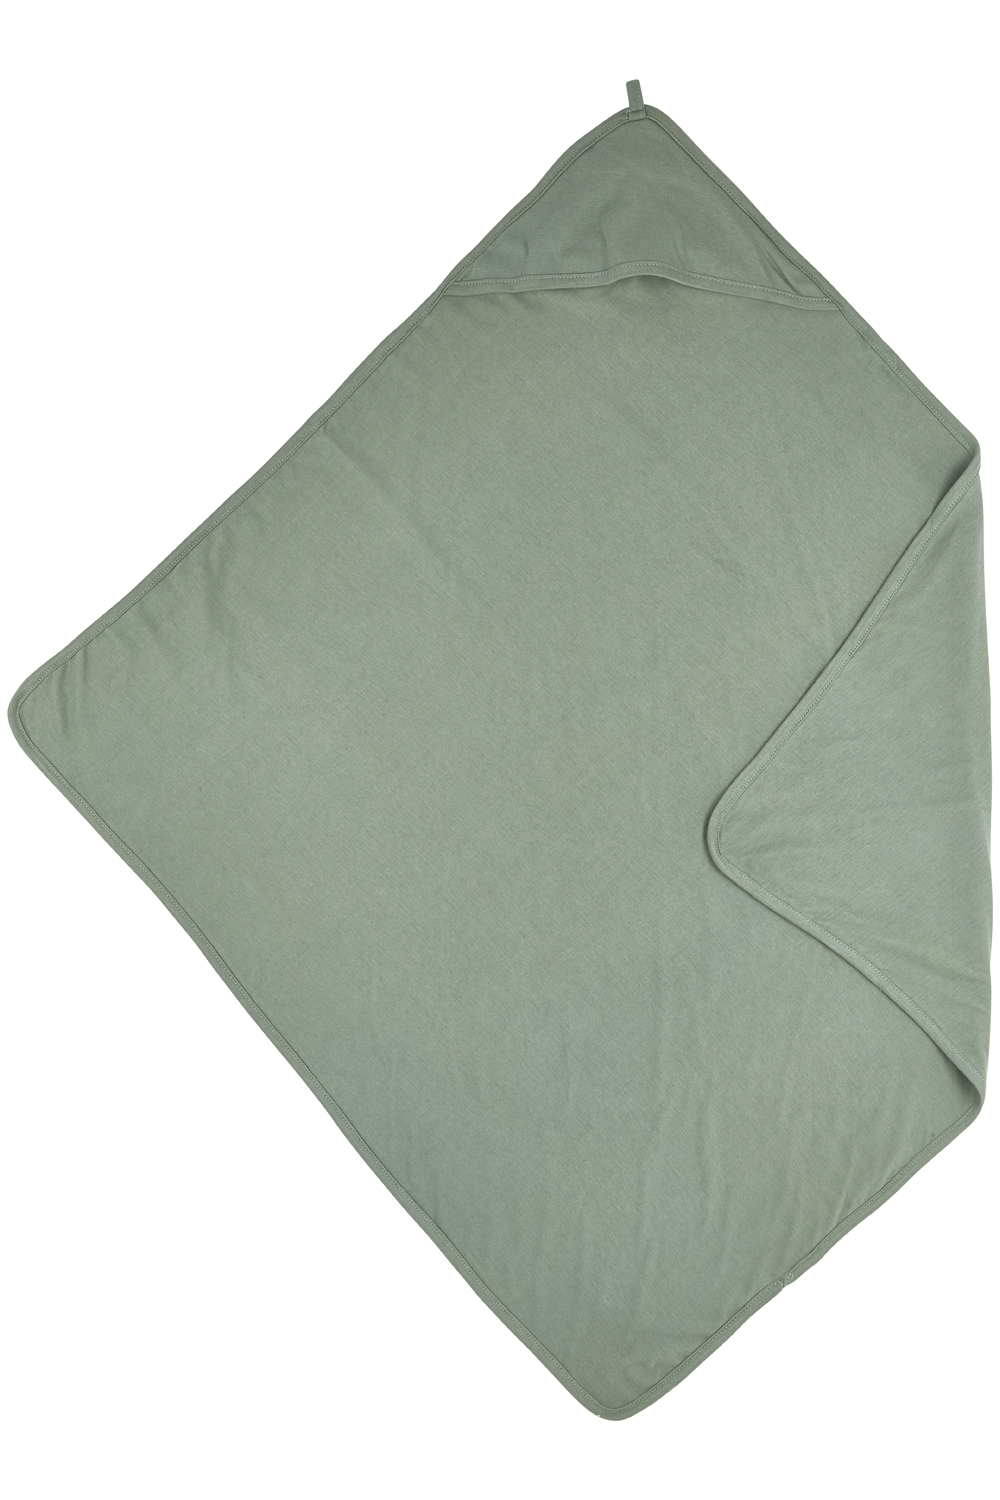 Badcape Basic Jersey - Forest Green - 80x80cm